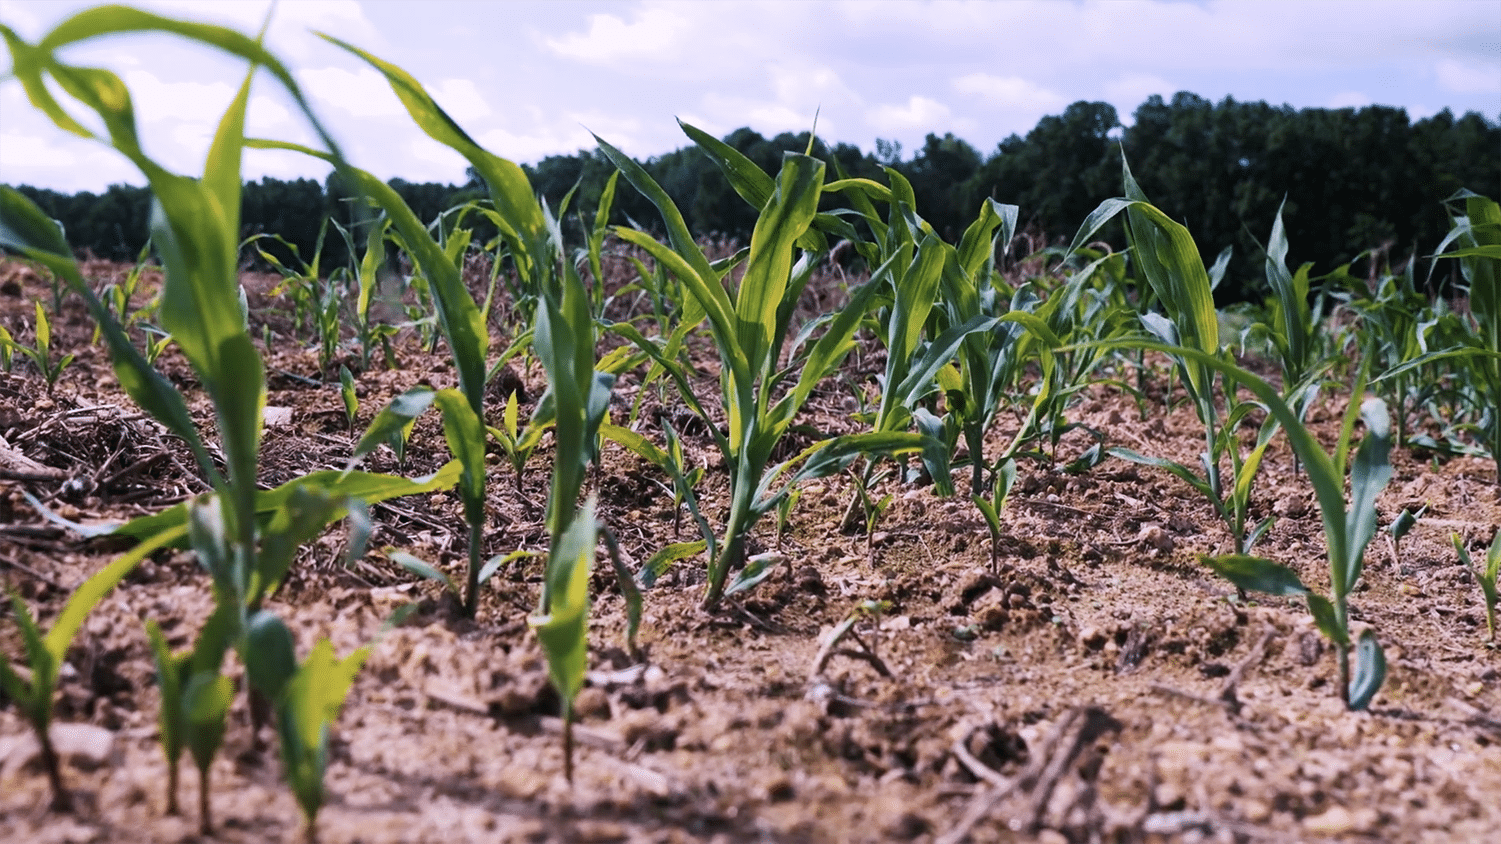 Rows of green crops grow in a field.